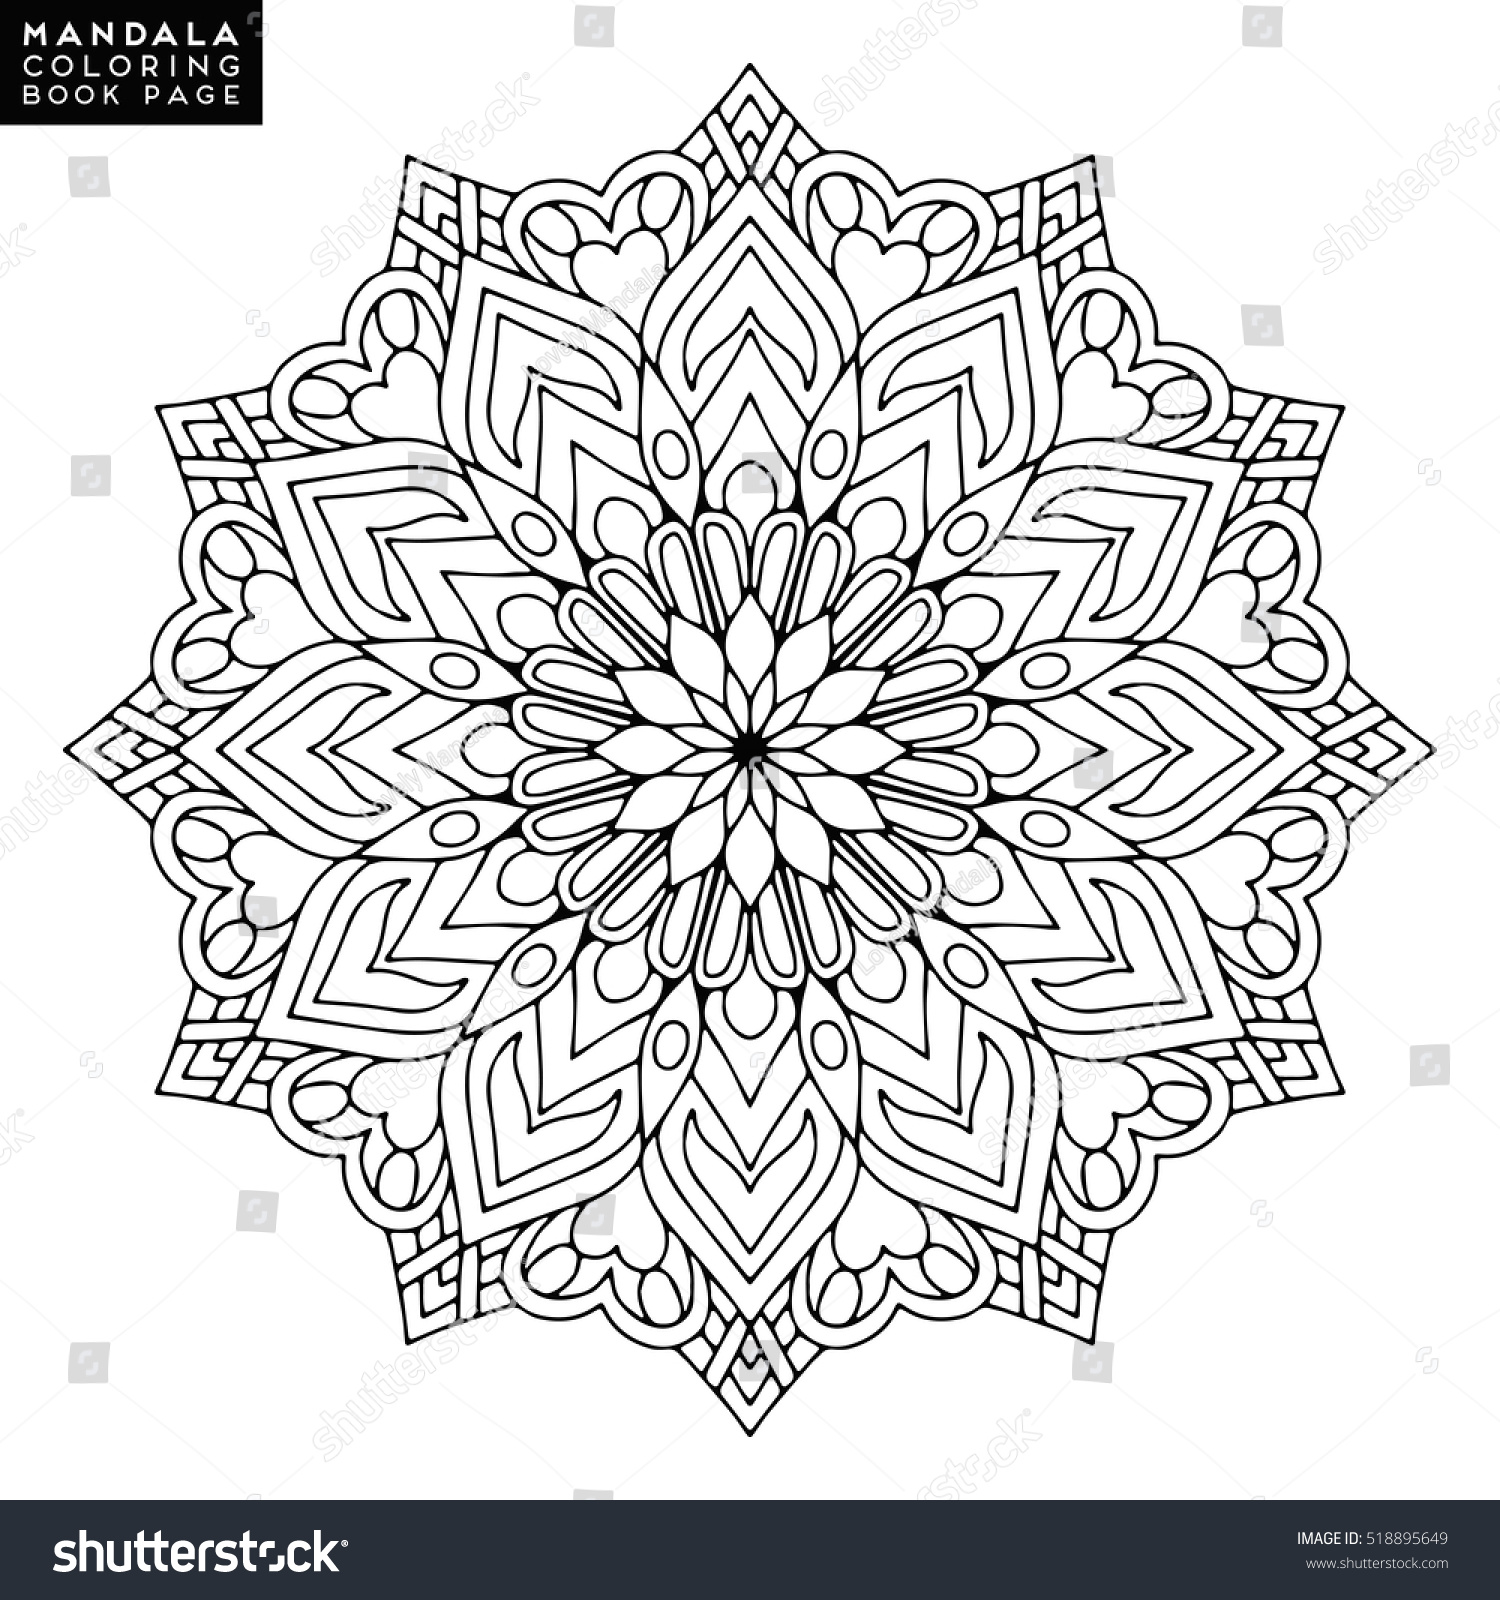 Co coloring book page template - Co Coloring Book Wedding Template Mandala Vector Floral Flower Oriental Coloring Book Page Outline